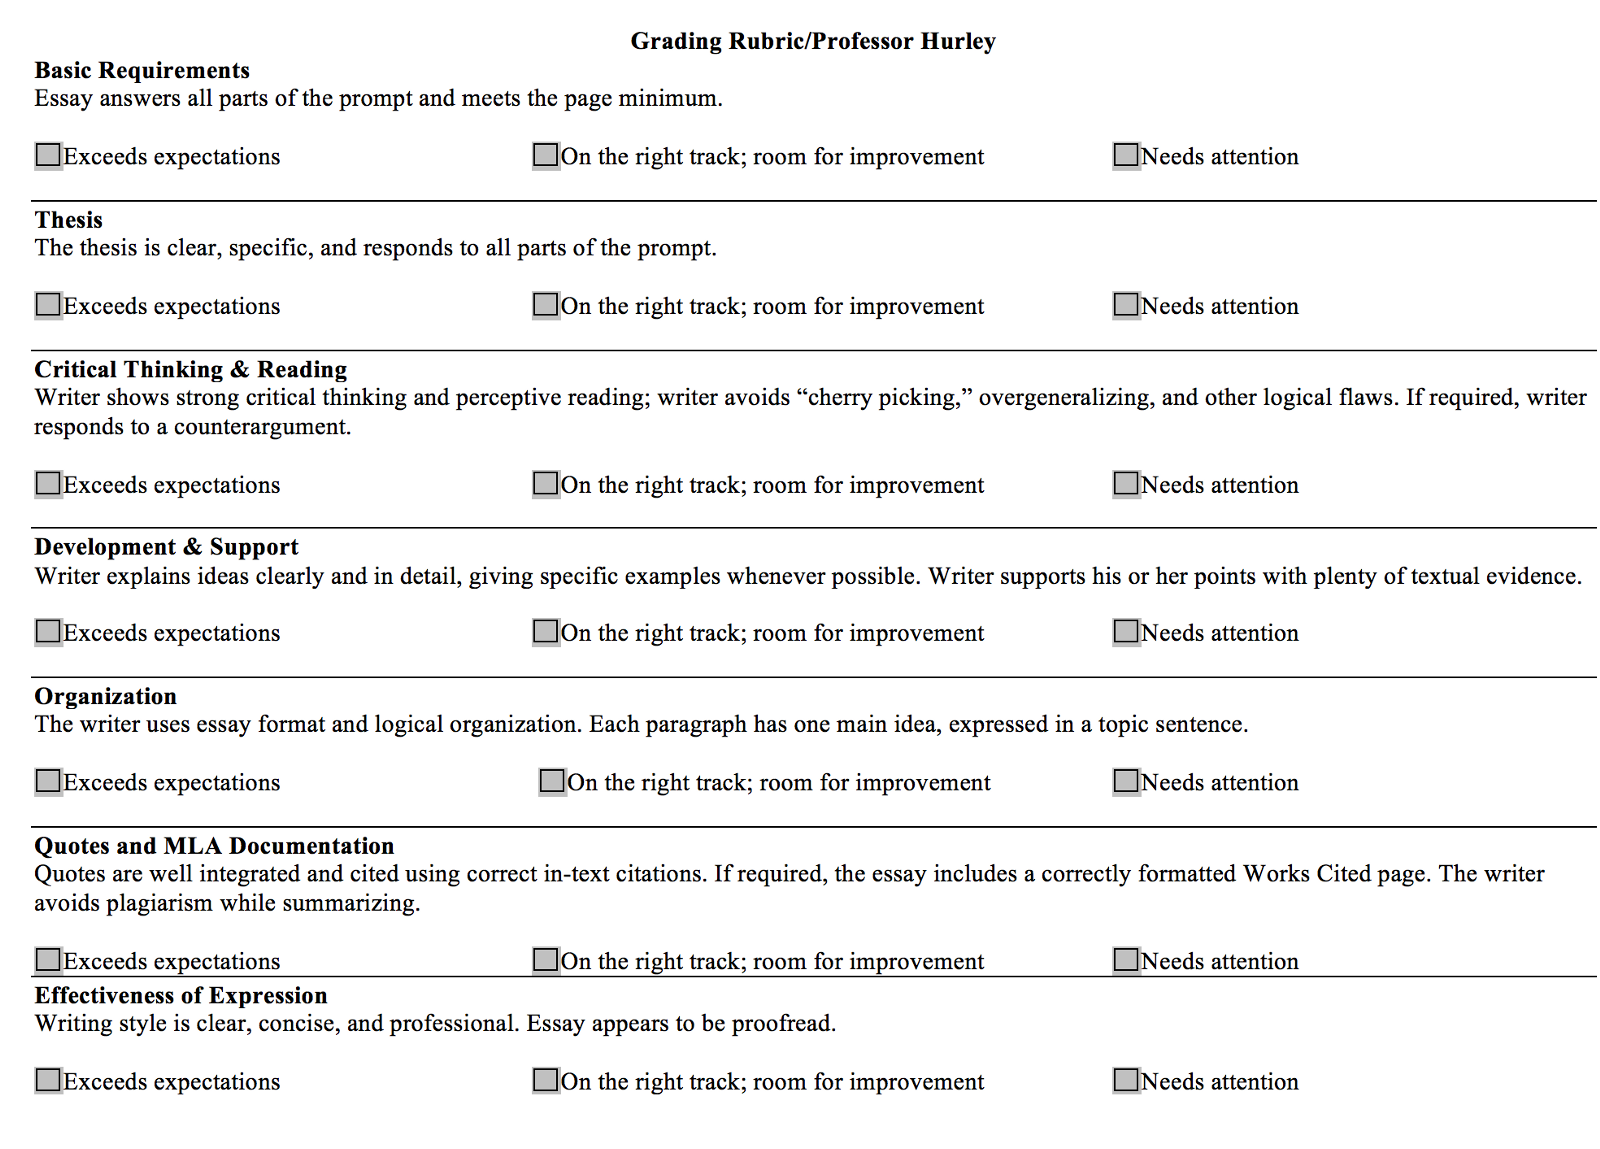 007 1l7bkjqmu2kth Pcoqy7bgg Rubrics For Essay Breathtaking Sample Questions Scoring Writing High School Full